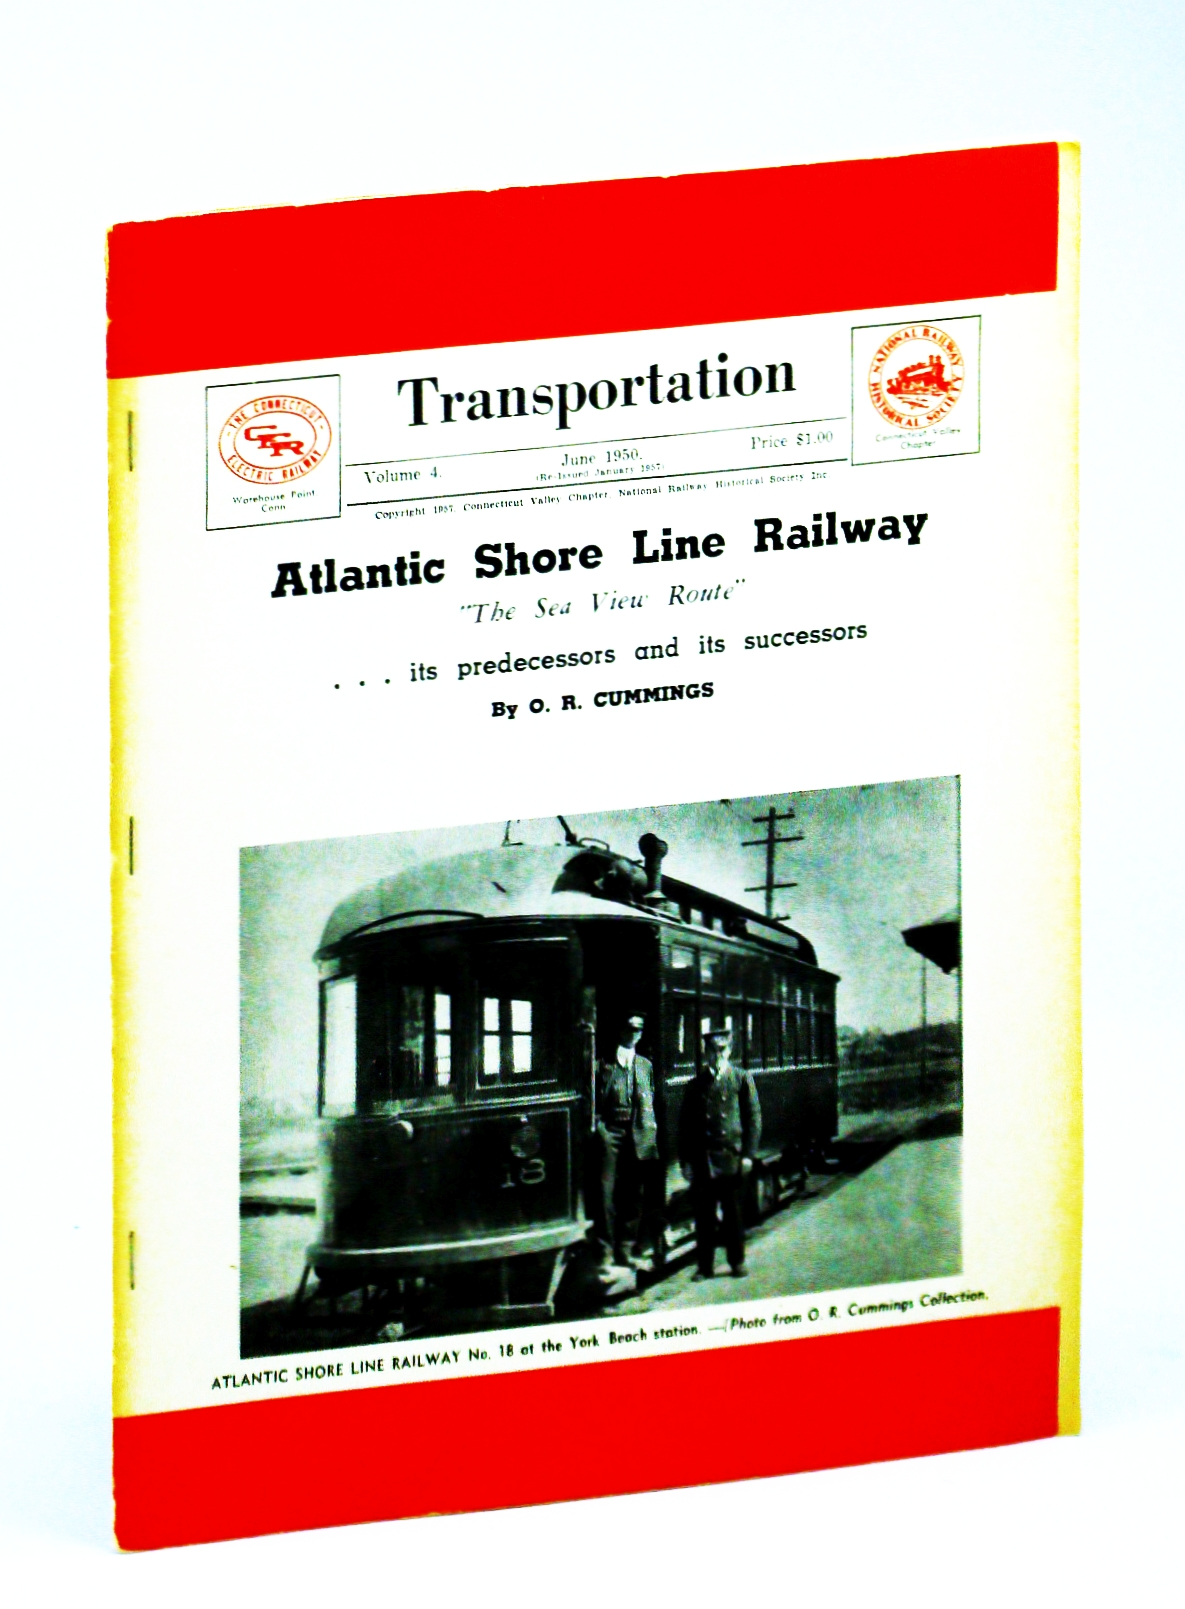 "Image for Transportaion Volume 4 June 1950 Atlantic Shore Line Railway "" The Sea View Route"""